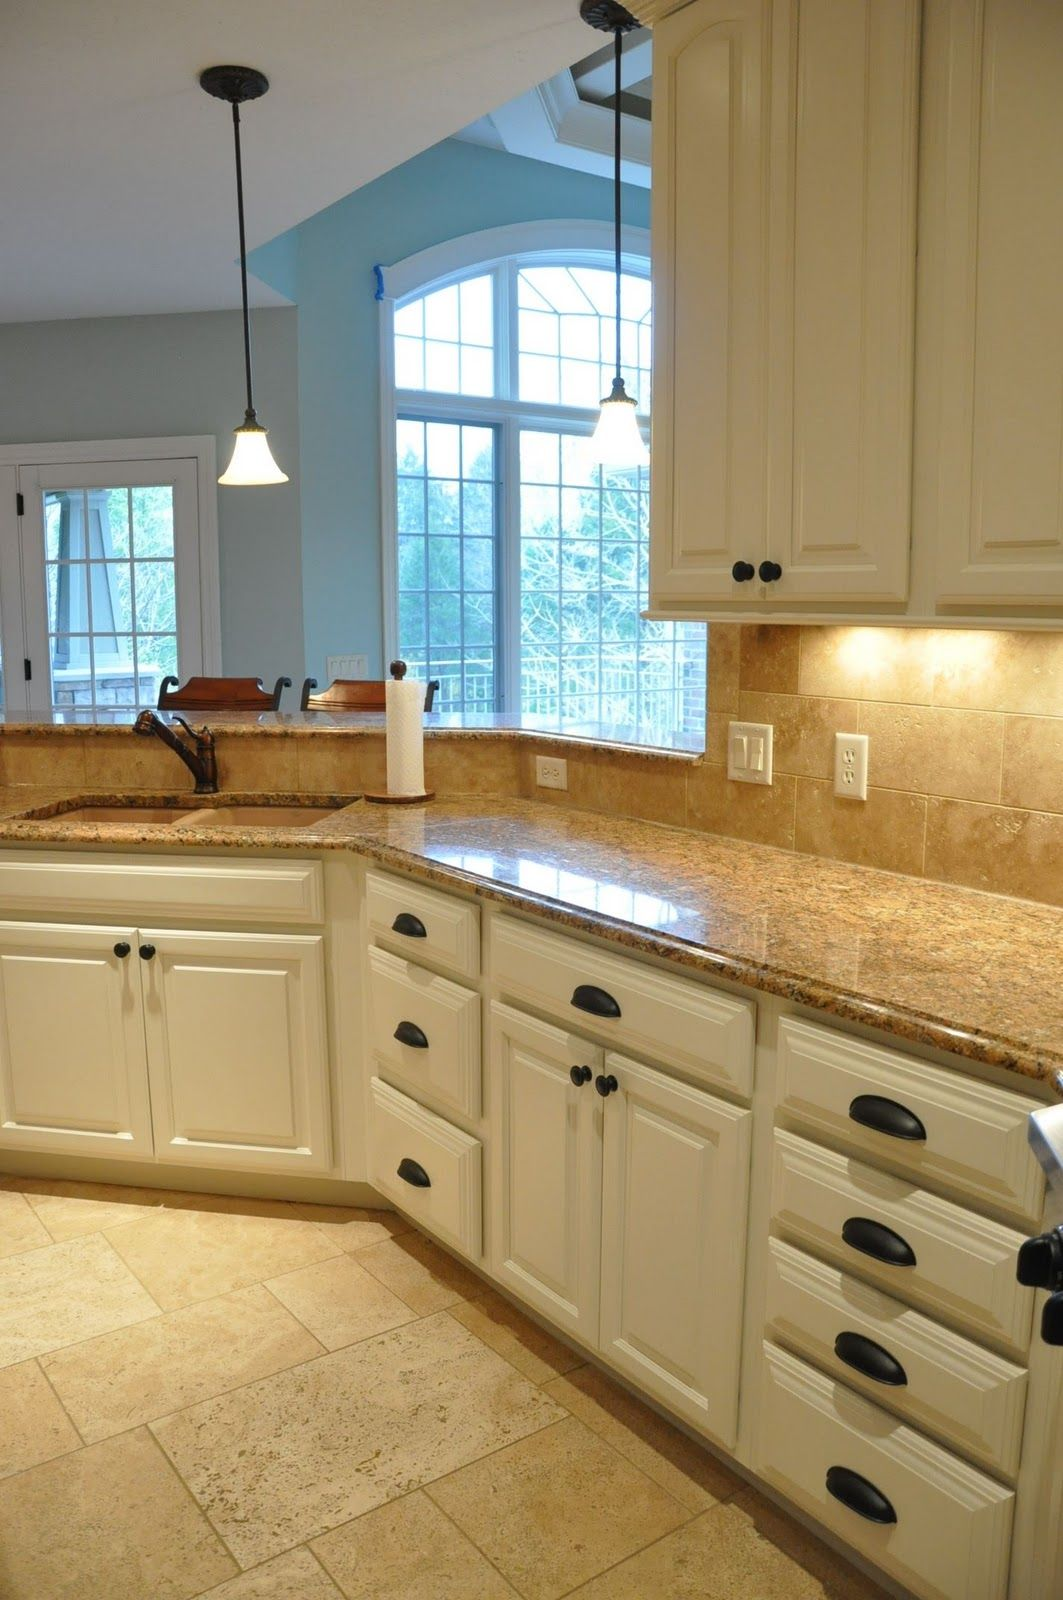 My Favorite Room Evolution Of Style Kitchen Cabinets